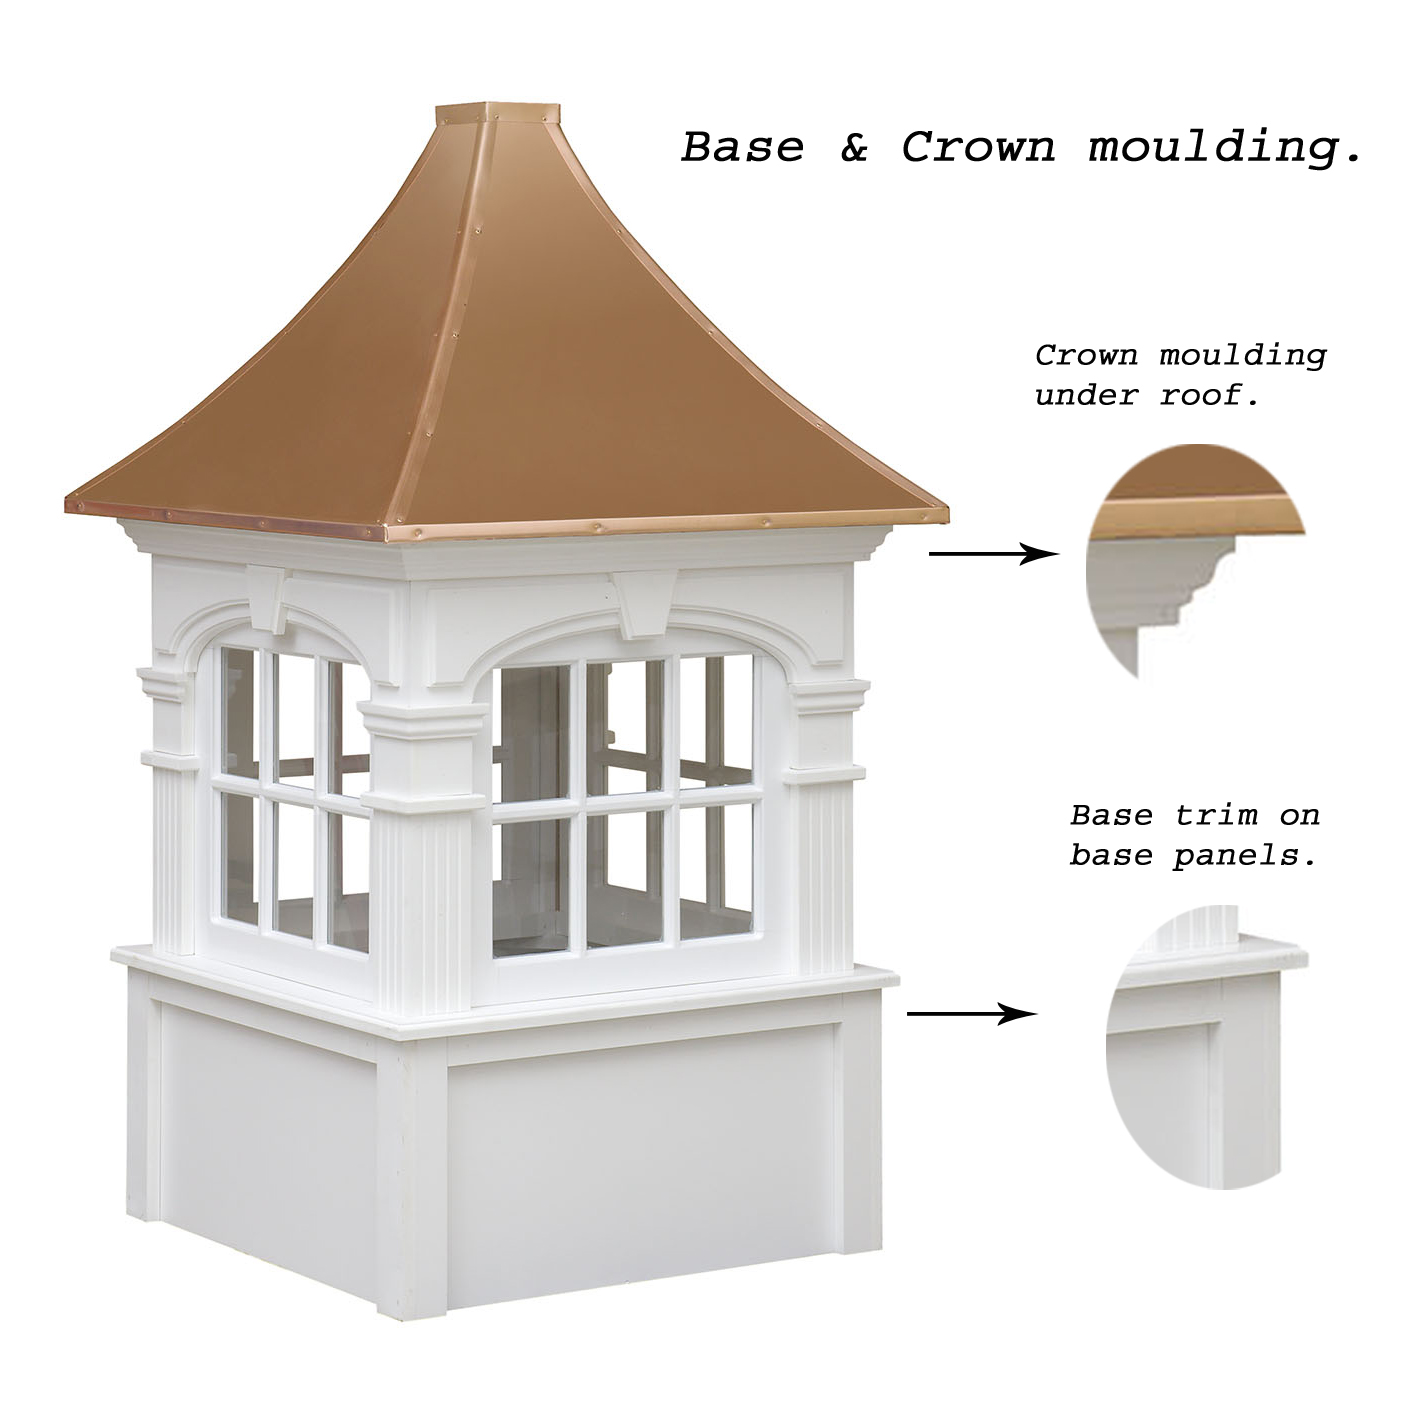 cupola showcasing crown moulding and base trim